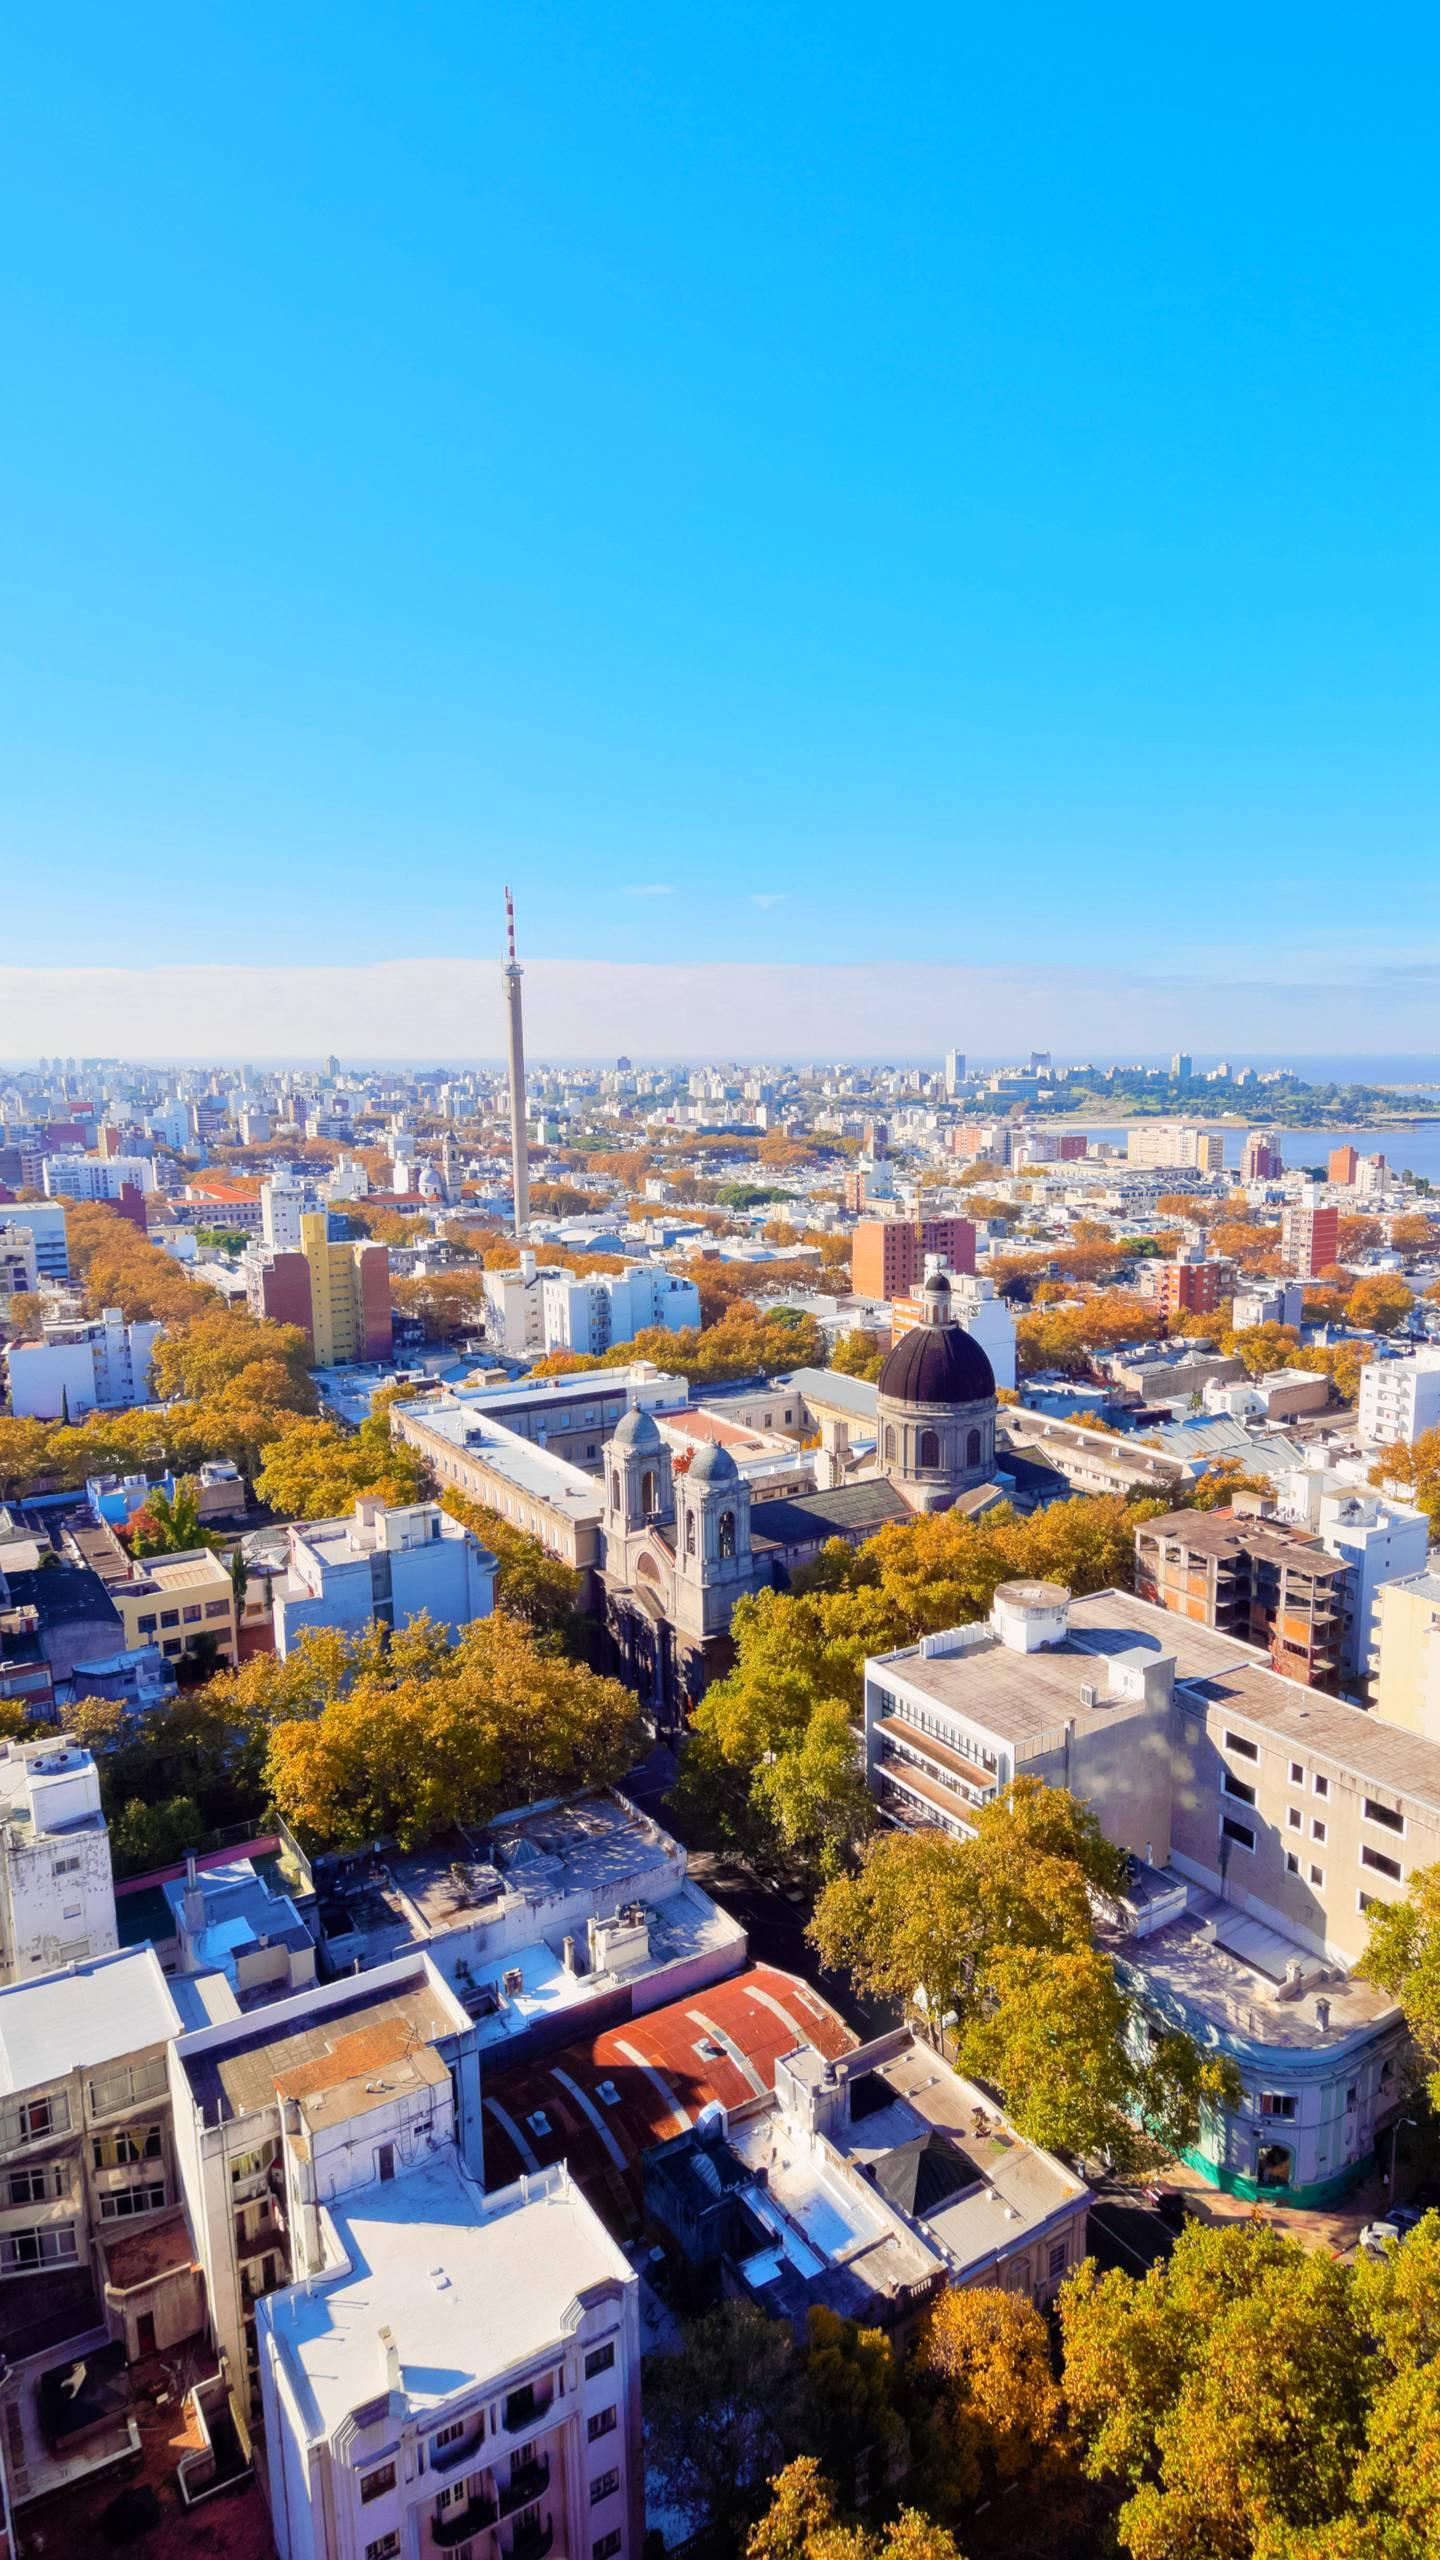 """City of Roses: Montevideo. The climate here is mild, with year-round trees and flowers, and is known as the """"Swiss of South America""""."""